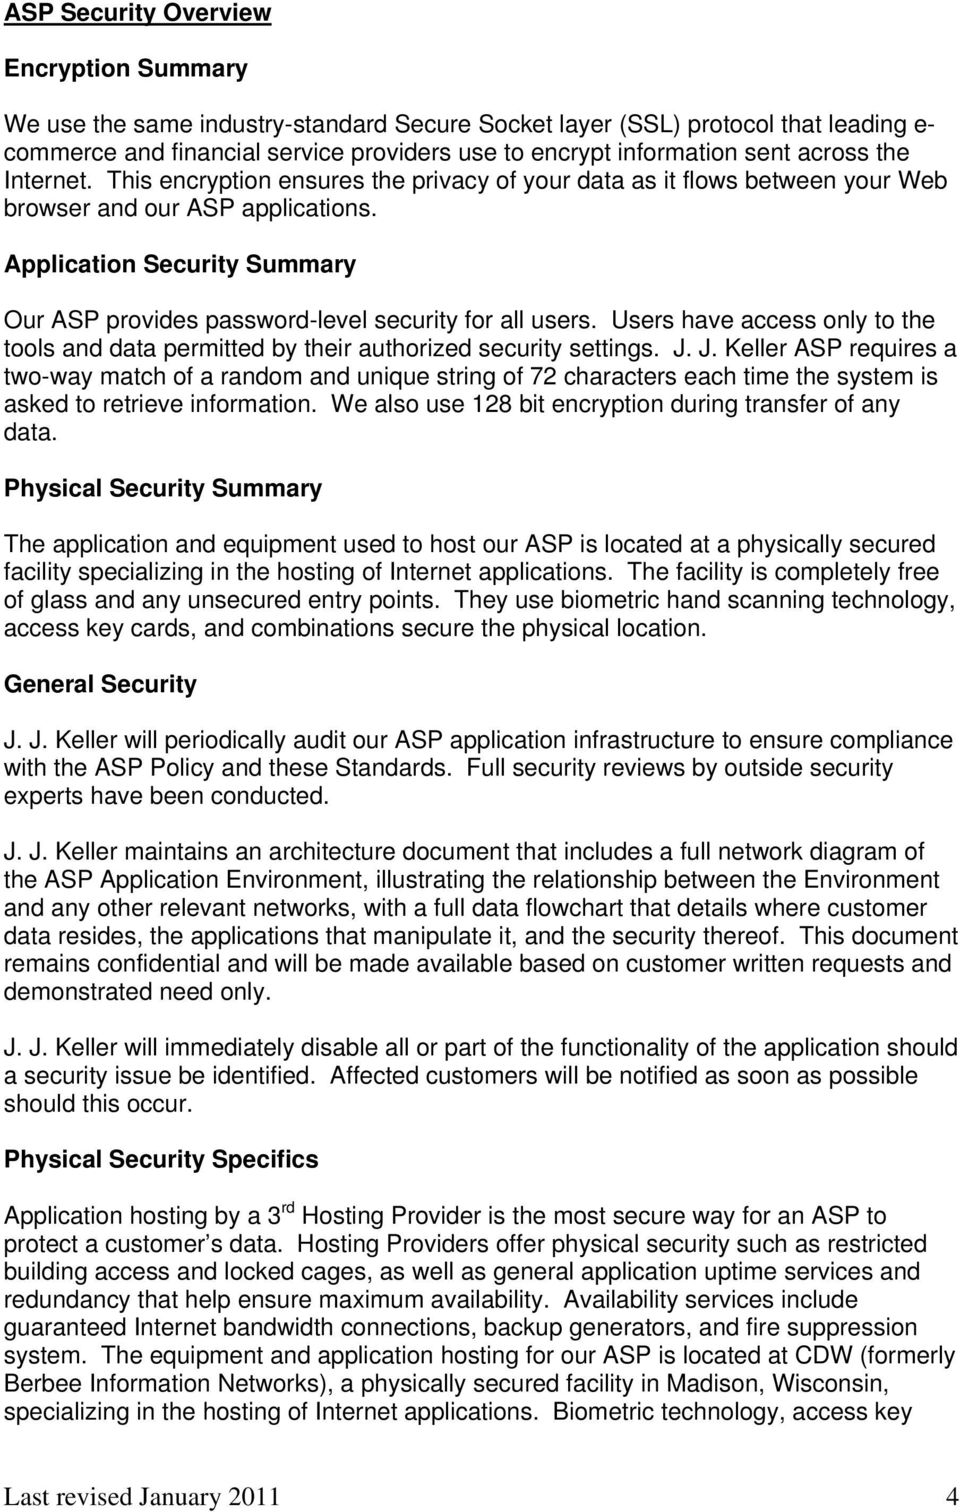 Application Security Summary Our ASP provides password-level security for all users. Users have access only to the tools and data permitted by their authorized security settings. J.